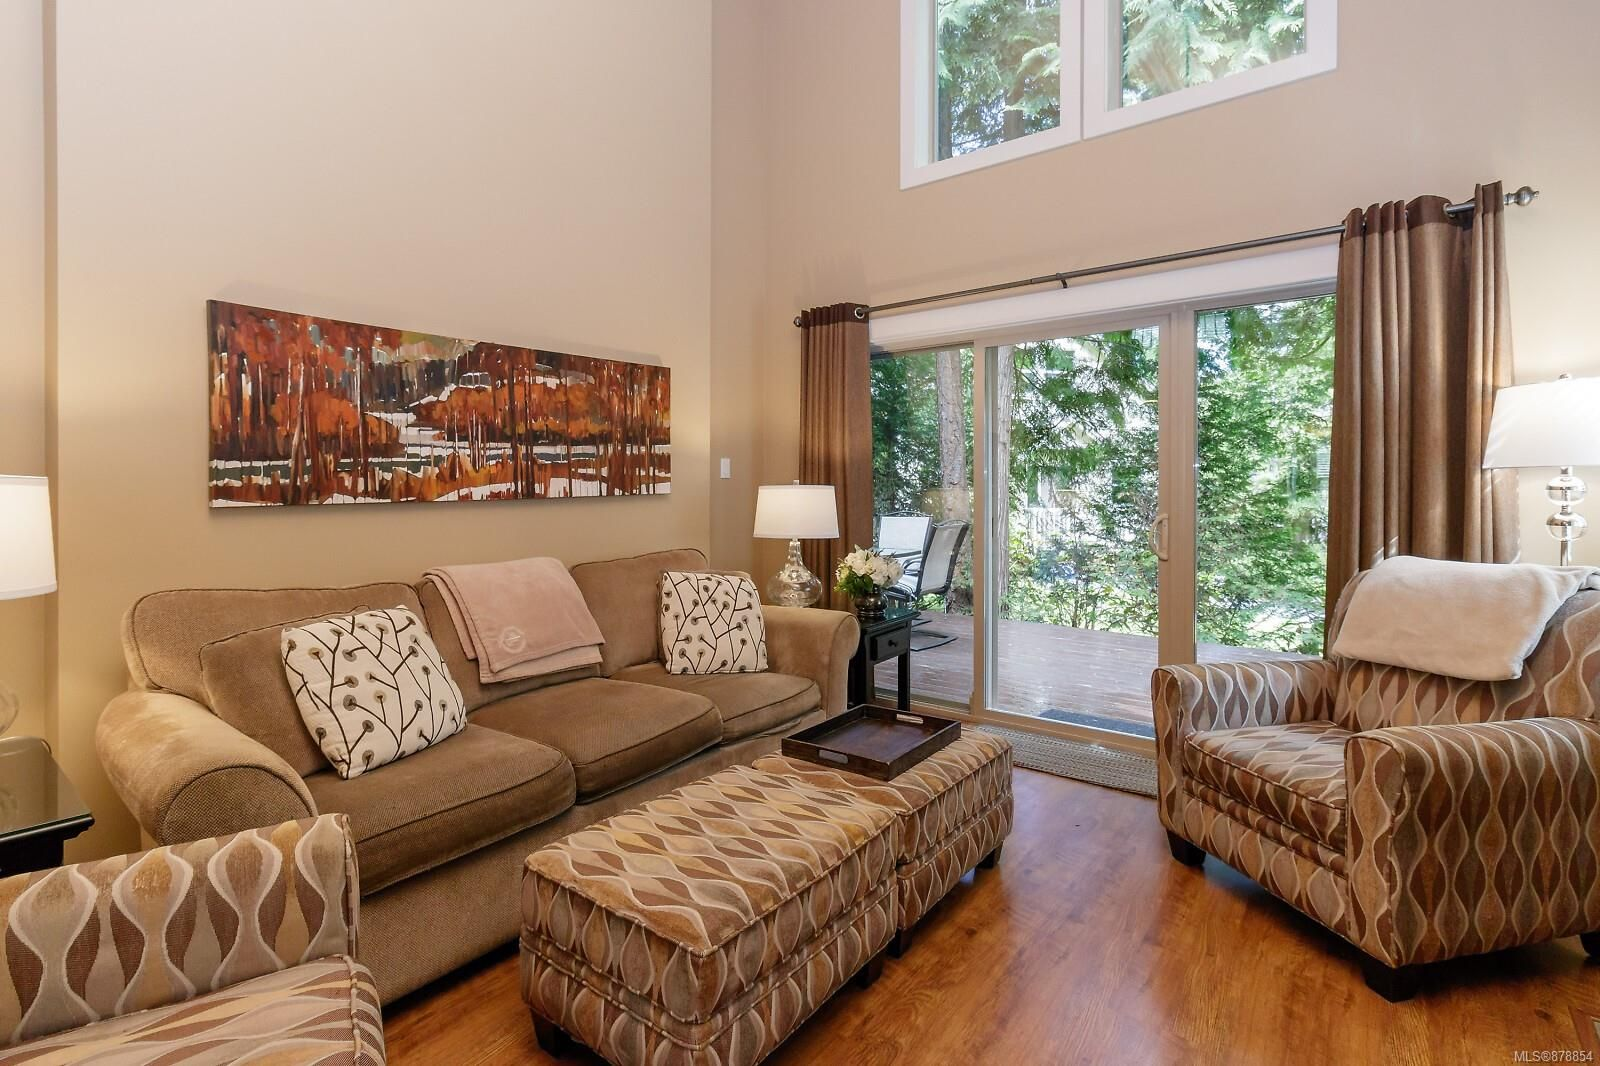 Photo 7: Photos: 223 1130 Resort Dr in : PQ Parksville Row/Townhouse for sale (Parksville/Qualicum)  : MLS®# 878854